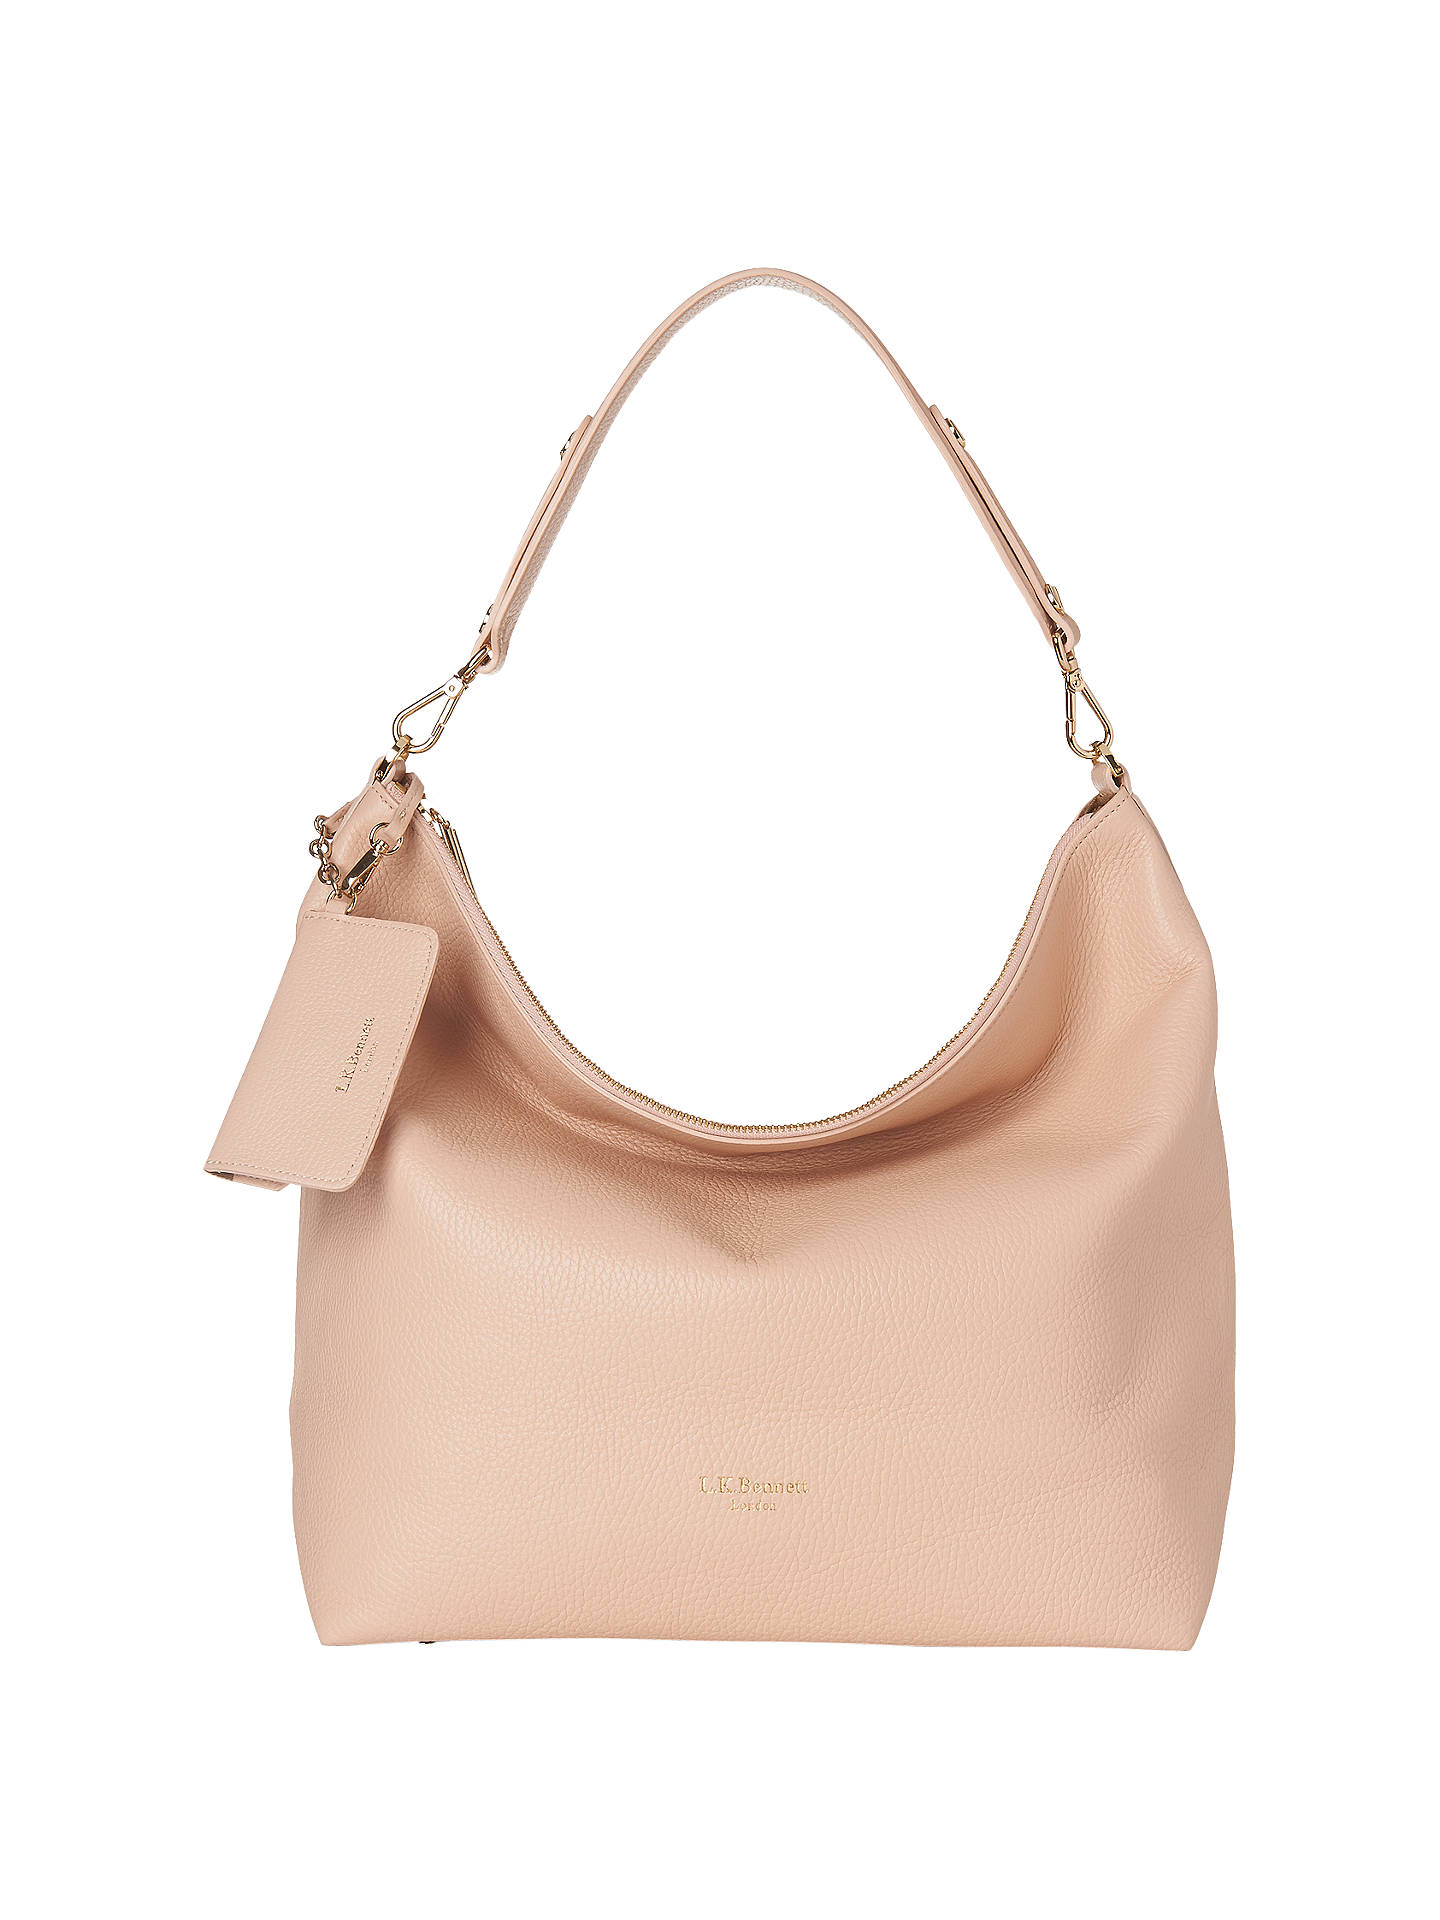 K. Bennett Margot Leather Shoulder Bag, Putty Online at johnlewis.com ...